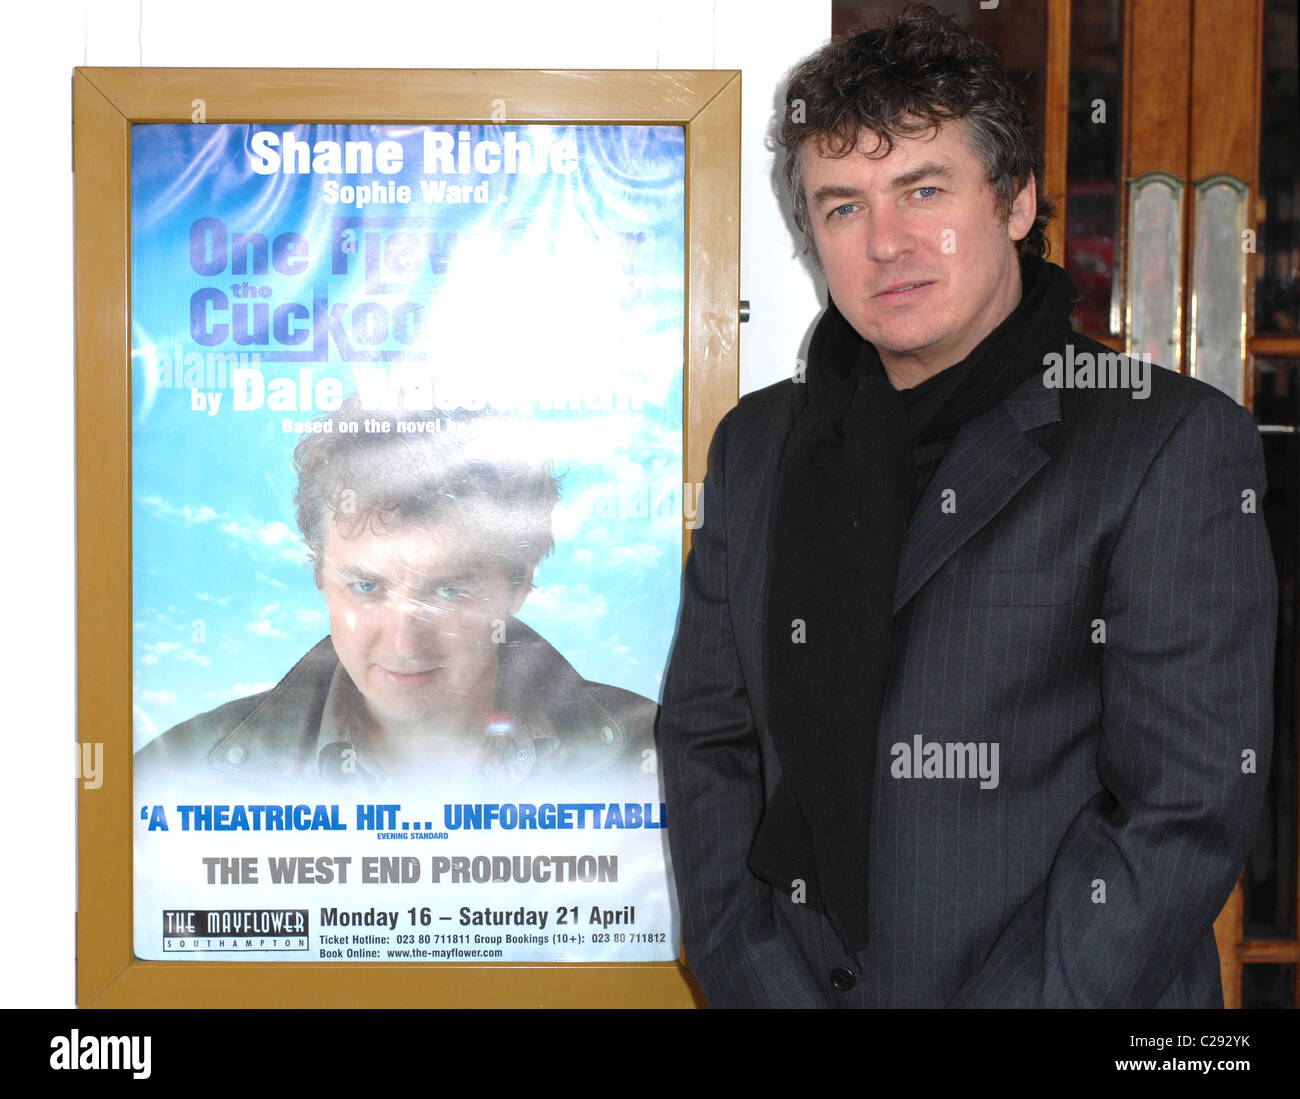 Shane Richie  - One Flew Over The Cuckoo's Nest - photocall  Southampton, England - 18.01.07 Rob Cable - Stock Image